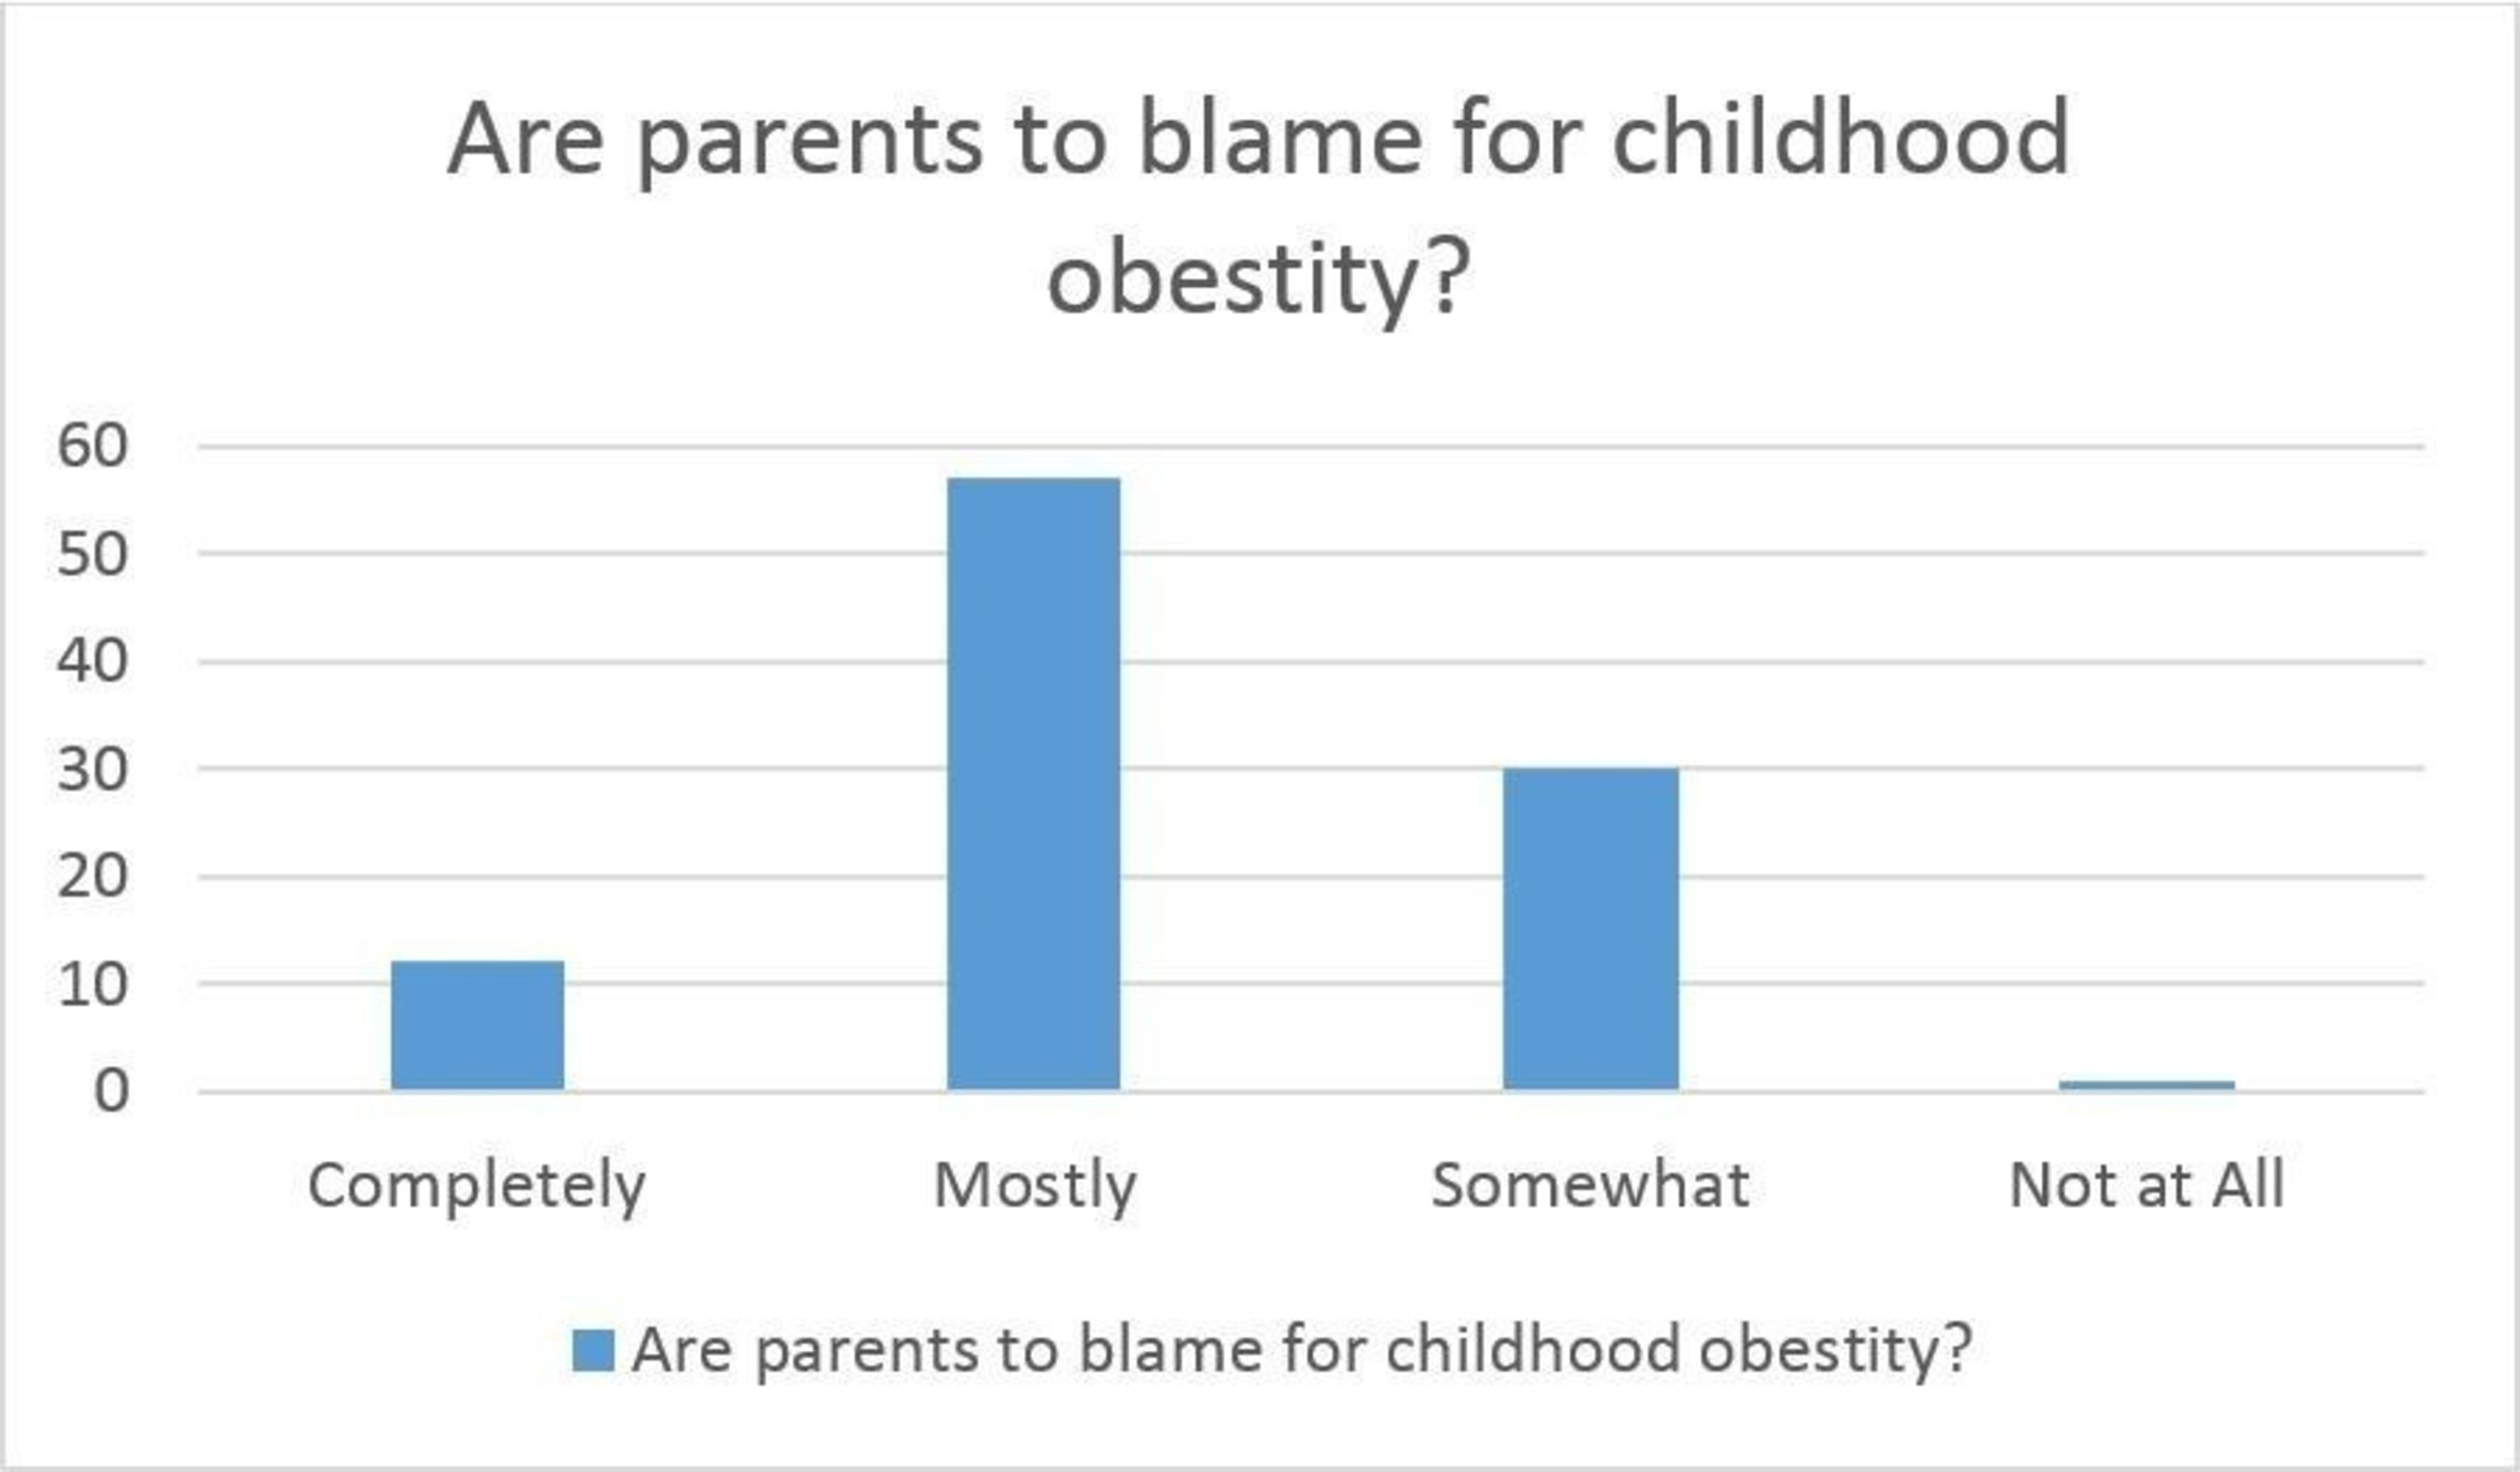 SERMO Poll on Childhood Obesity